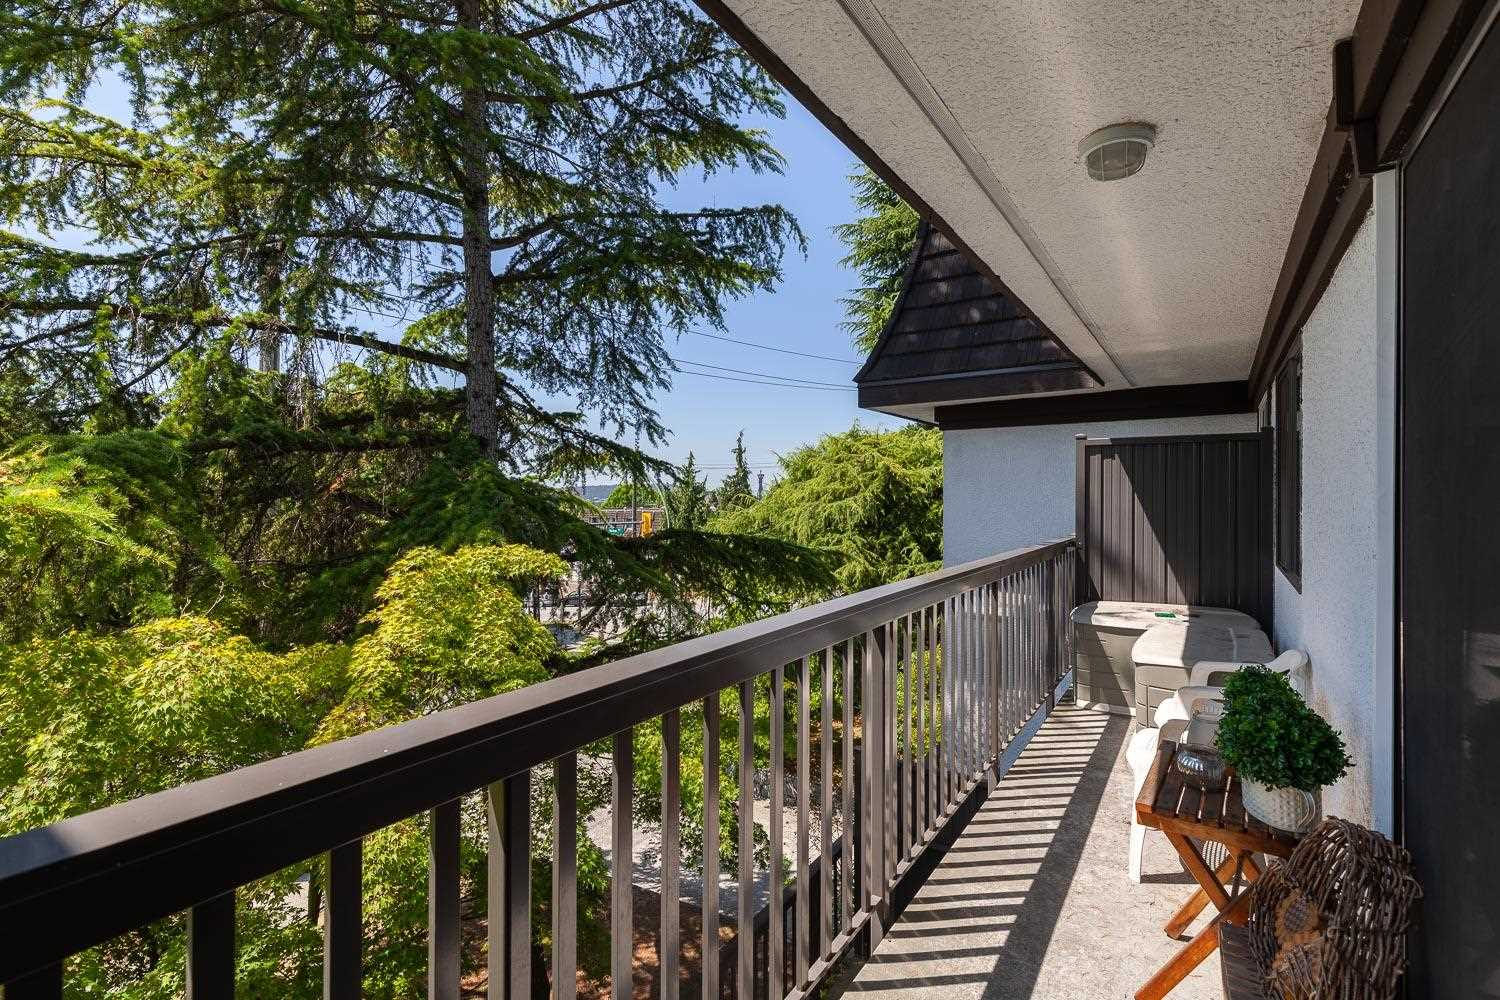 Listing Image of 208 270 WEST 3RD STREET